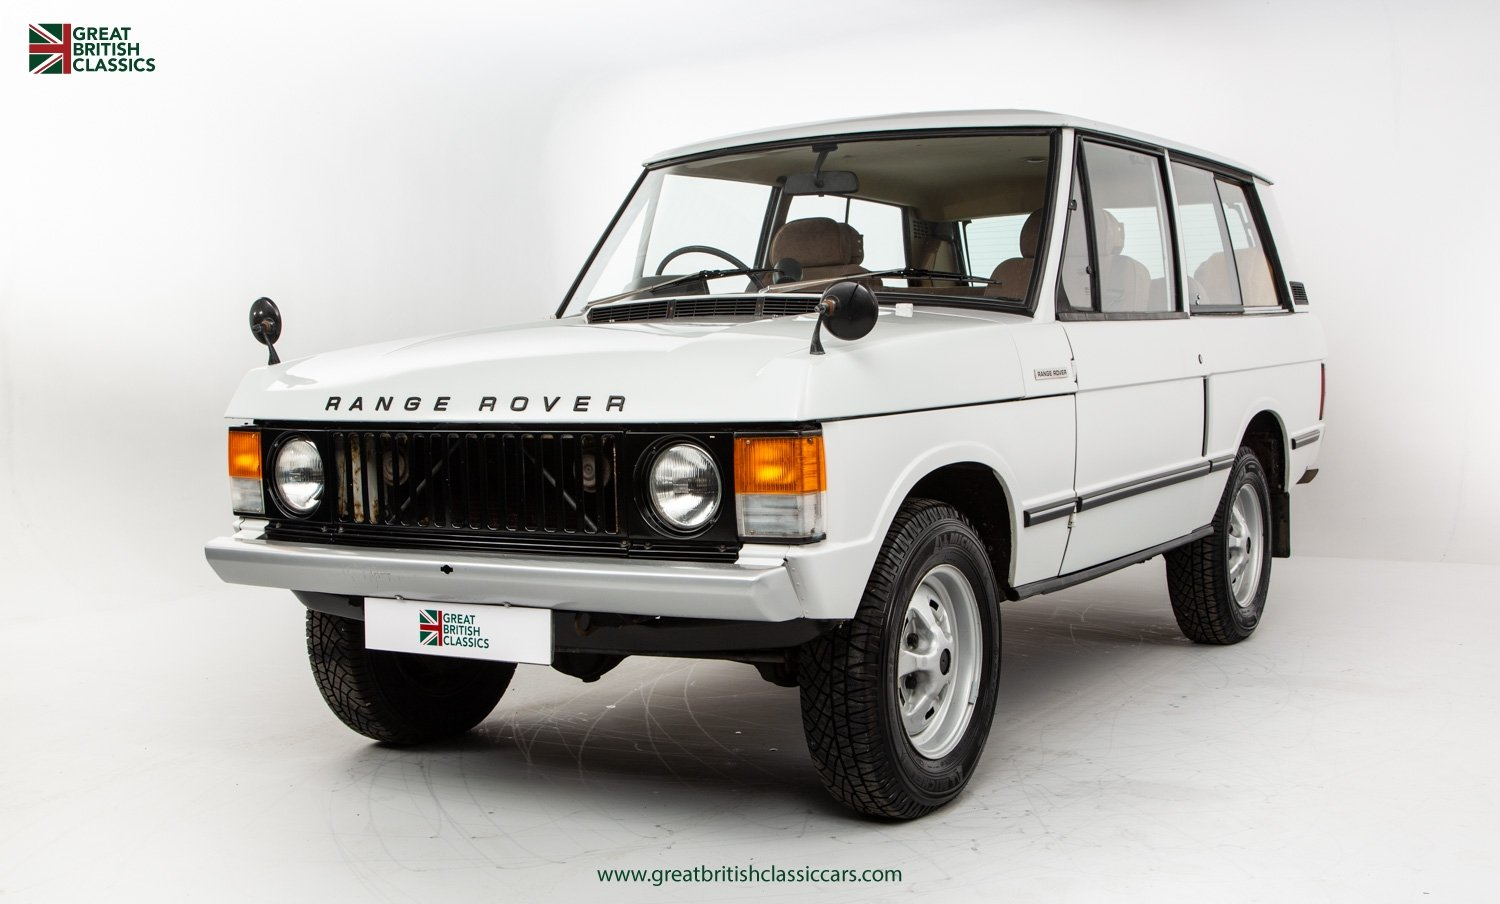 1972 RANGE ROVER SERIES 1 // SUFFIX A // FAMILY OWNED FROM NEW For Sale (picture 2 of 21)